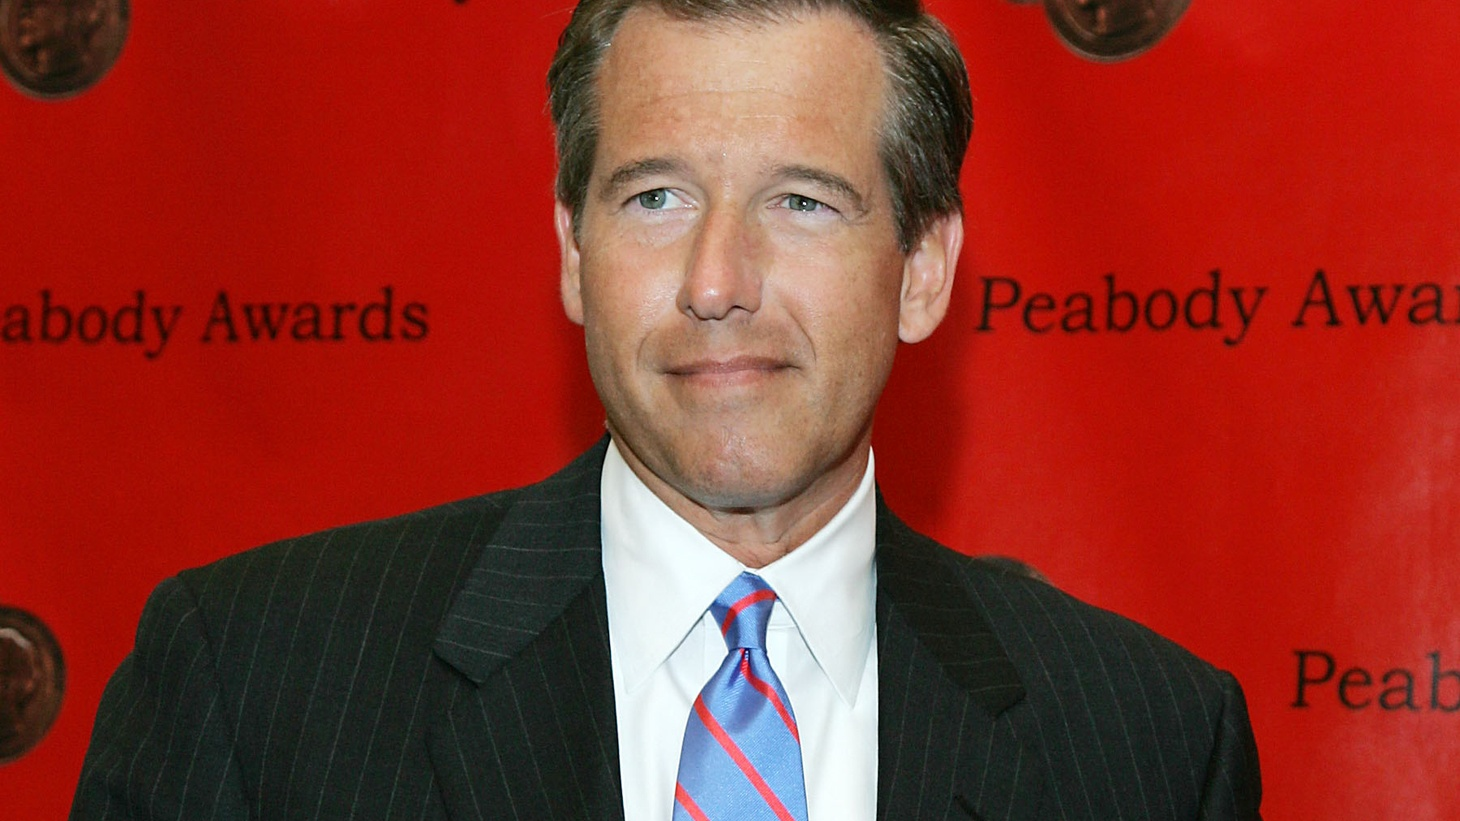 NBC's Brian Williams has apologized for fabricating an experience he had reporting in Iraq 12 years ago. For years, he said his helicopter was hit by enemy fire, but admitted this week that it wasn't. What does science say about how suggestible and reliable our memories are?